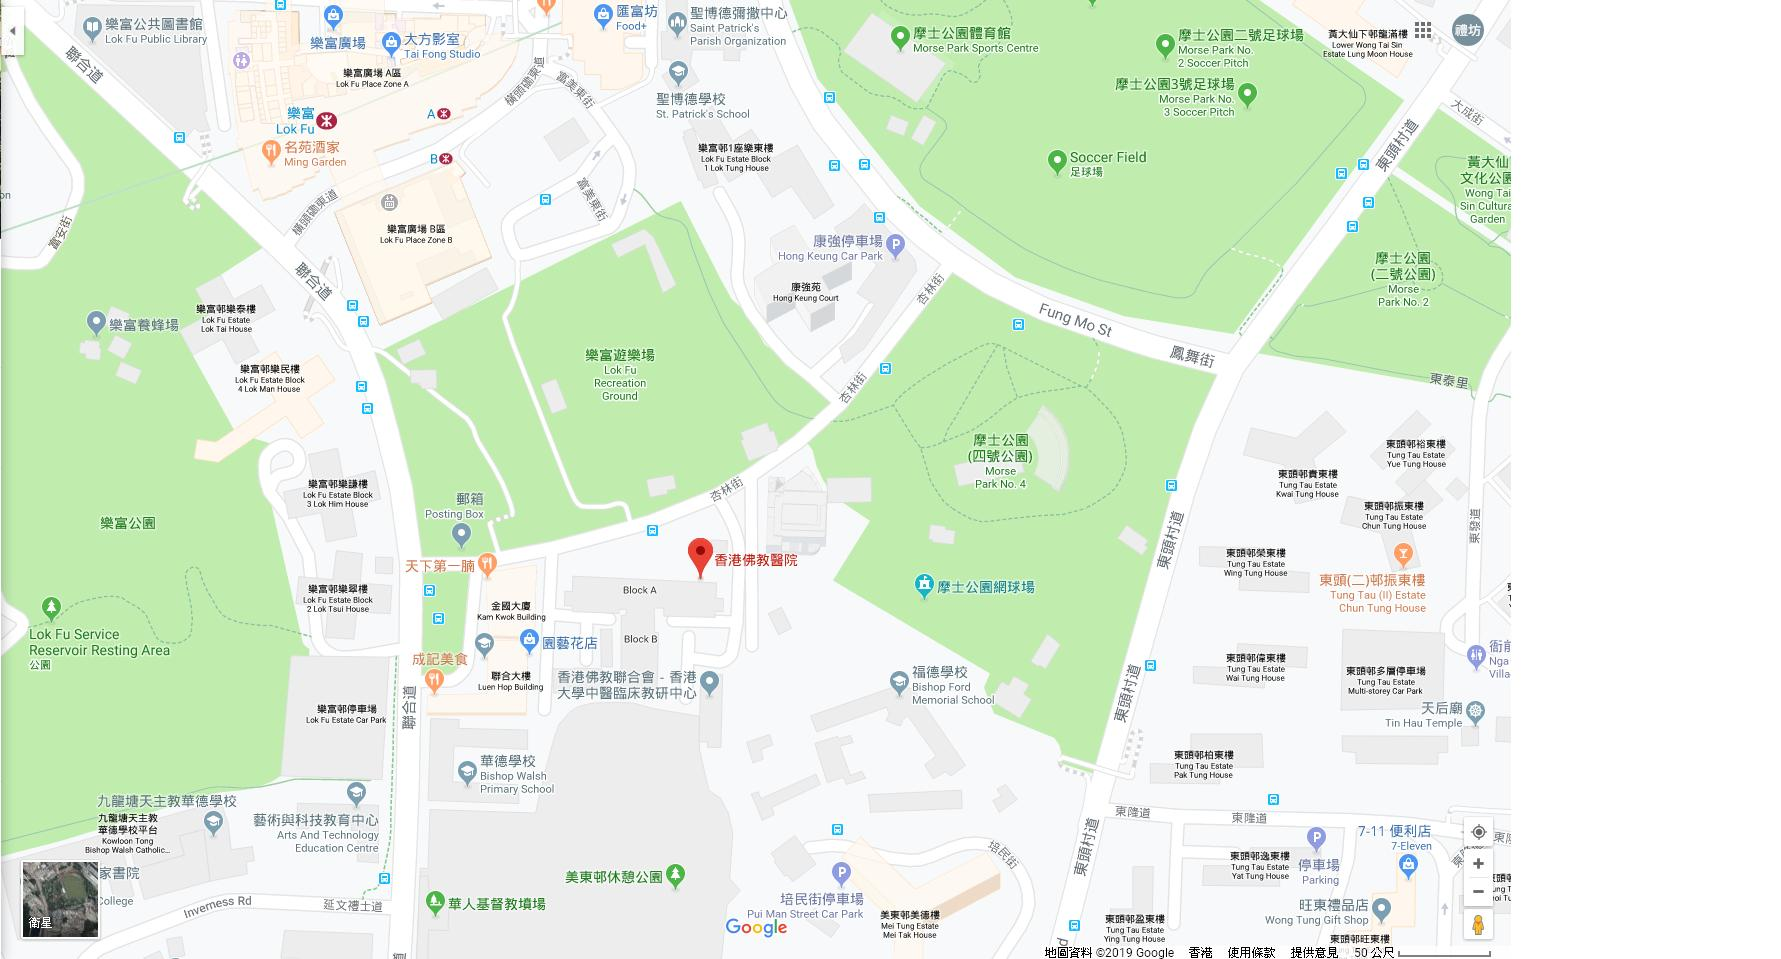 Hong Kong Buddhist Hospital Map